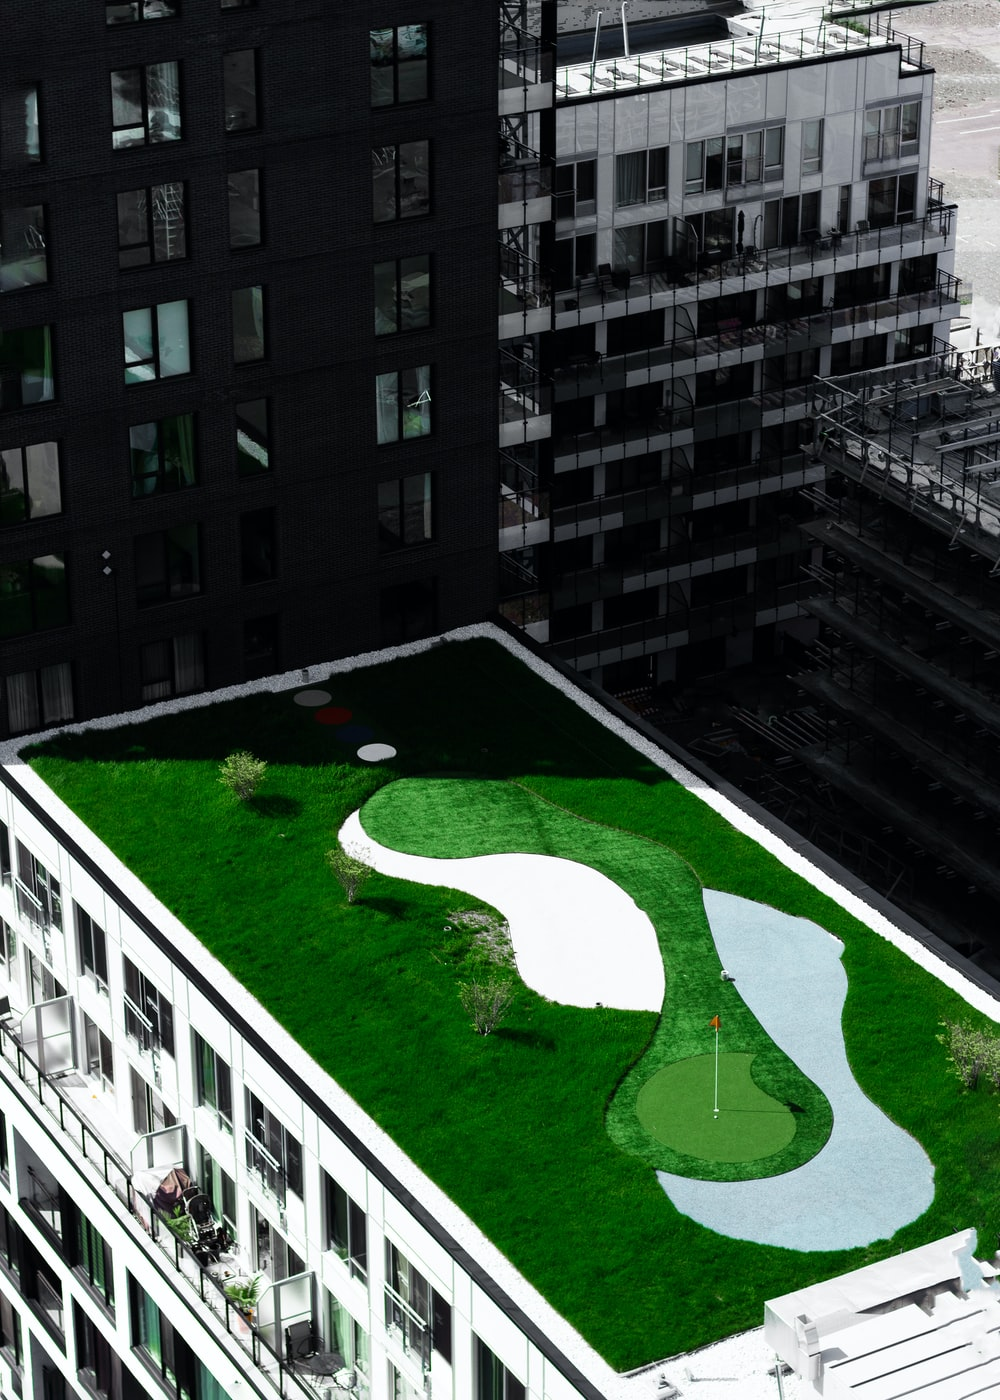 golf field on top of building during daytime